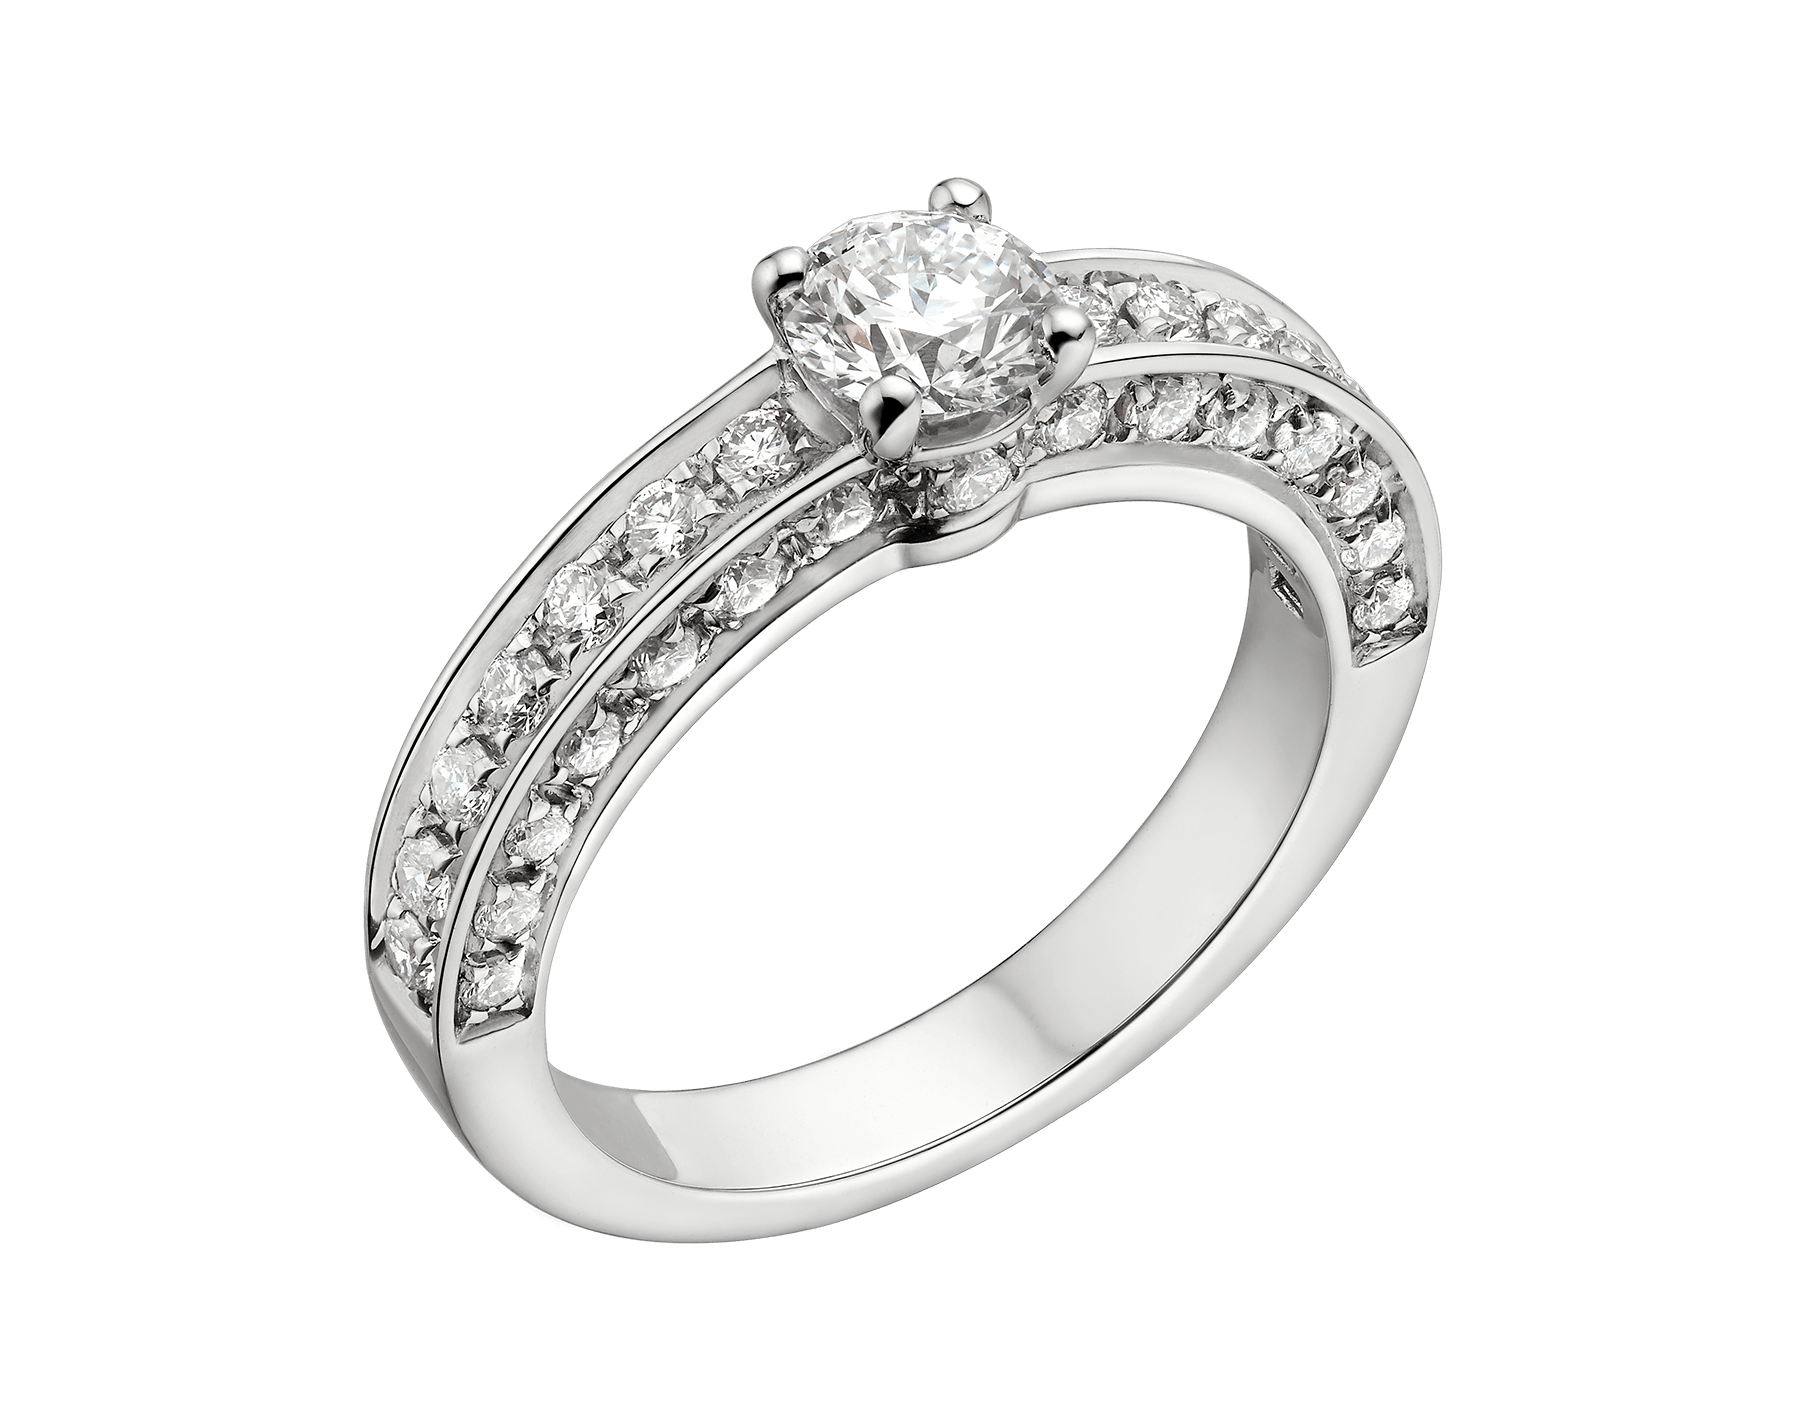 Dedicata a Venezia: 1503 solitaire ring in platinum with a round brilliant-cut diamond and pavé diamonds. Available from 0.30 ct. Named after the year in which the first engagement ring was offered in Venice. 343569 image 1